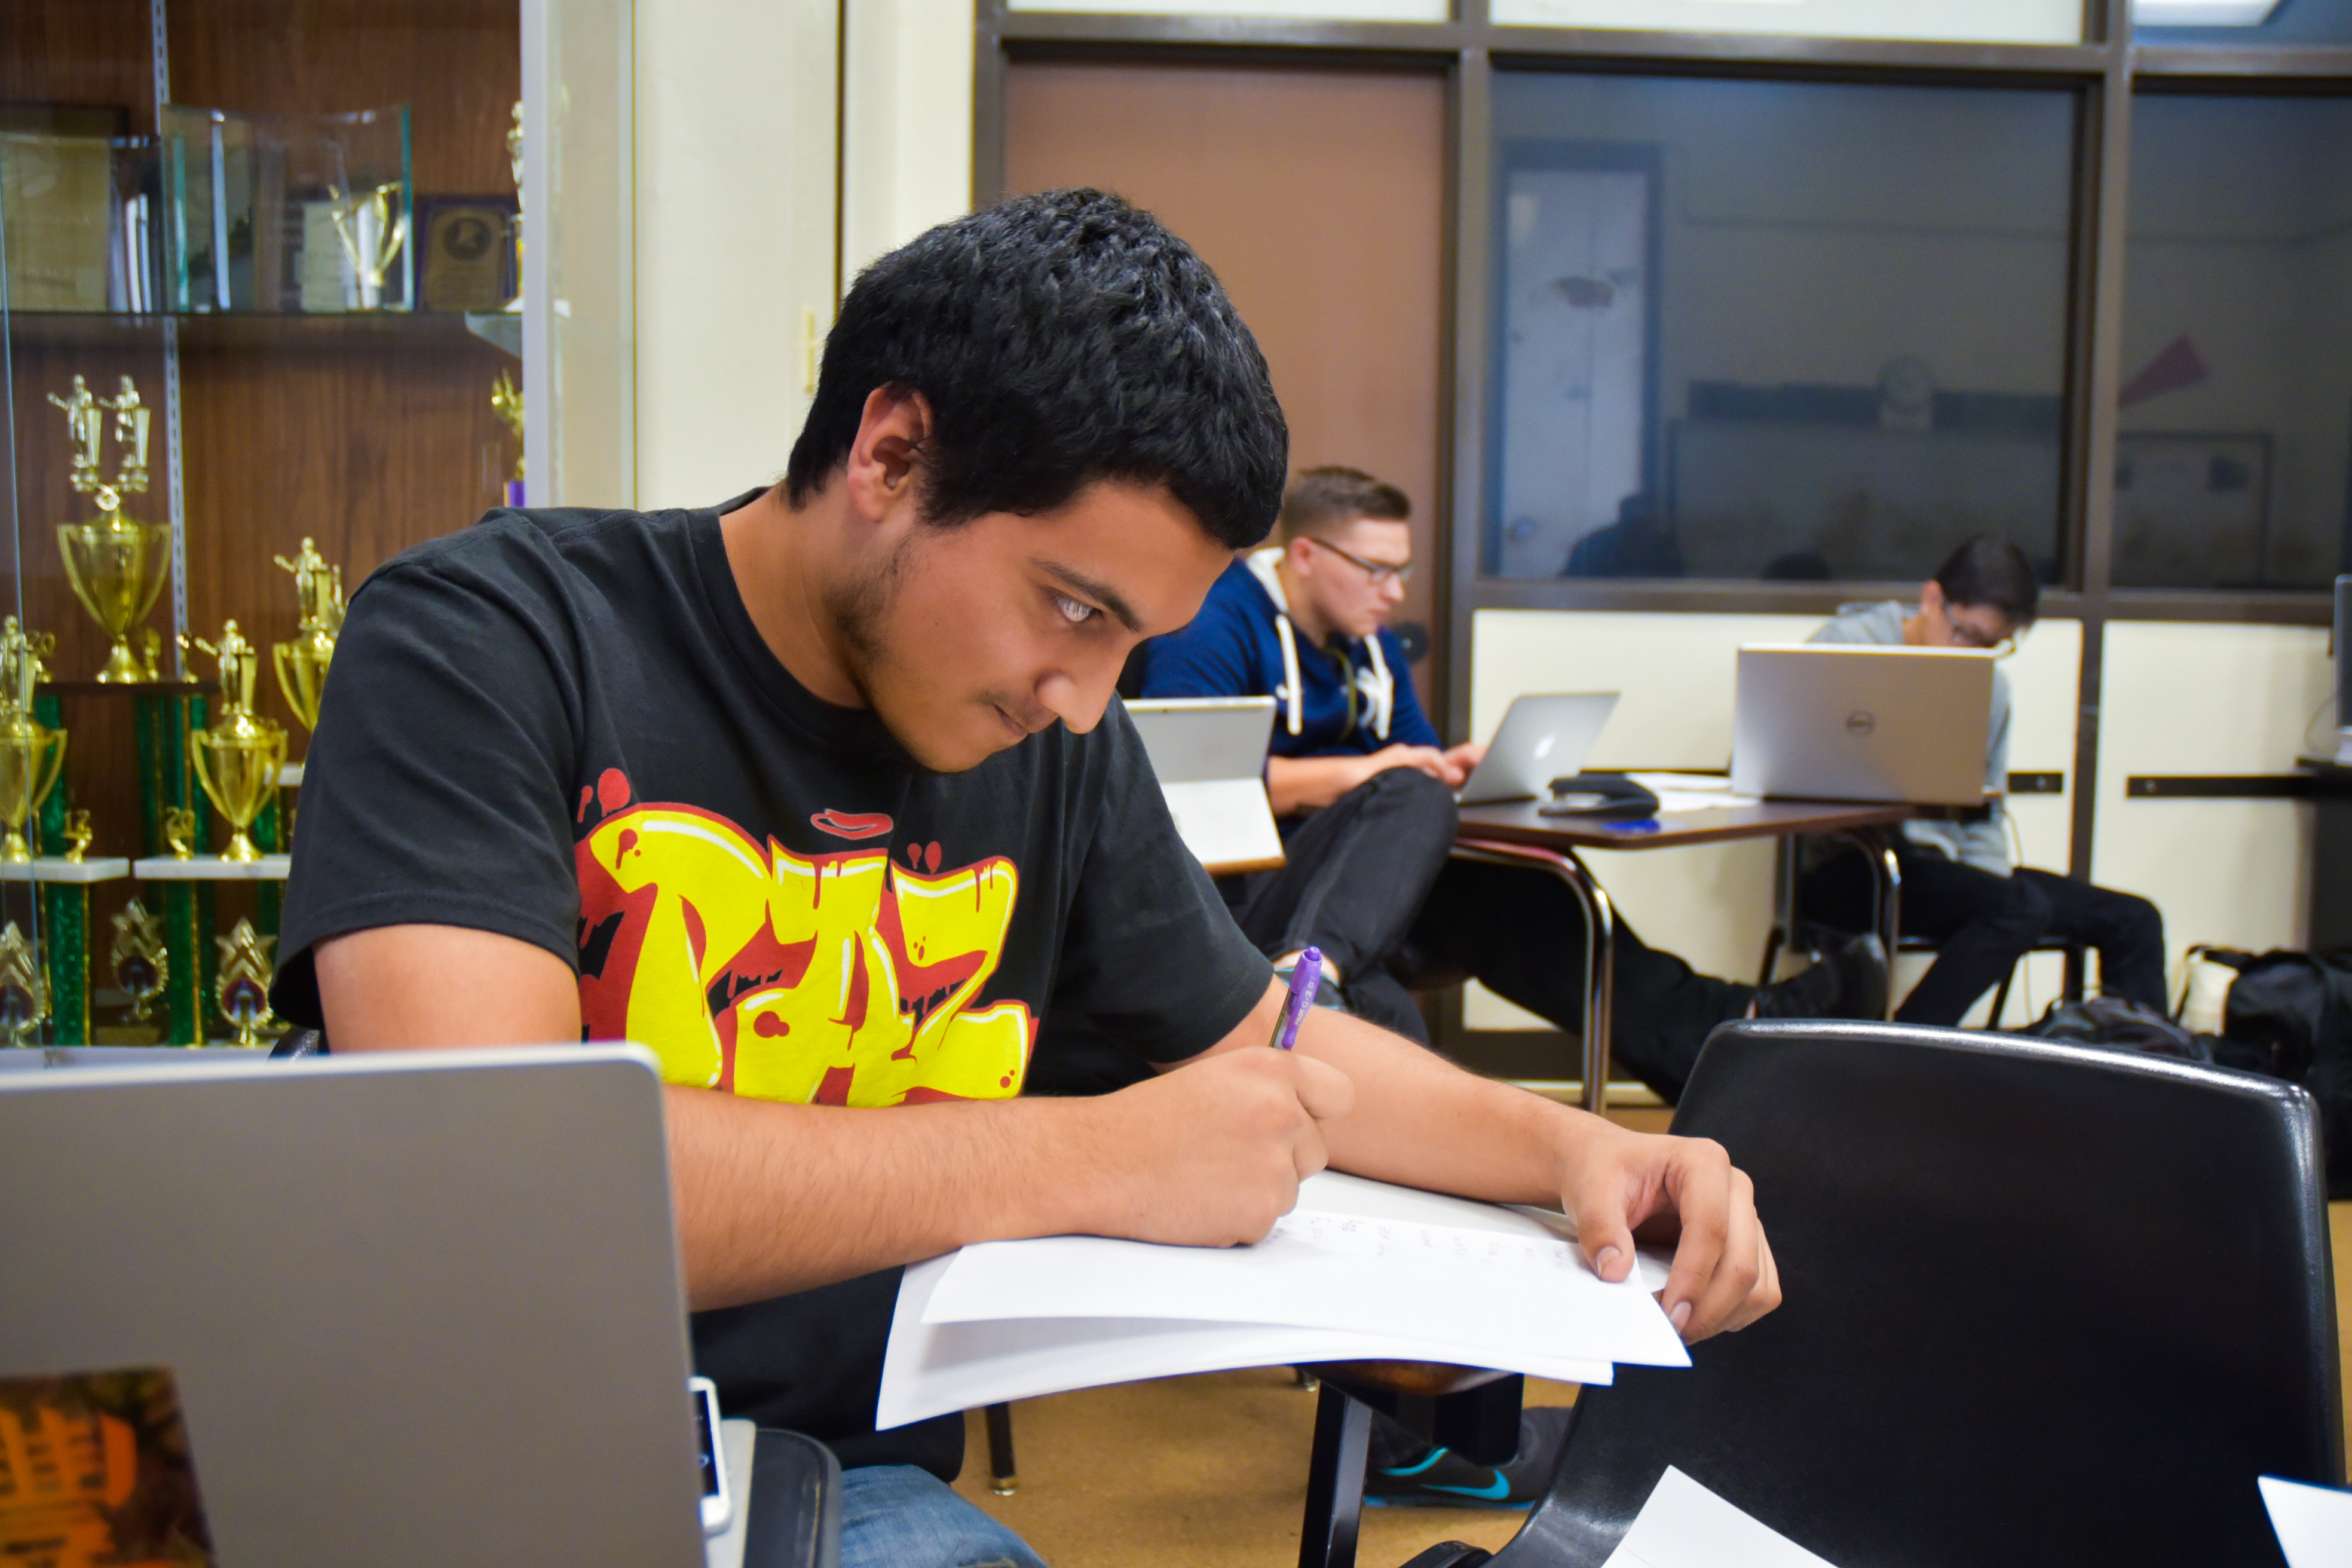 San Joaquin Delta College speech and debate team member Peter Perez jots down notes during his 20 minutes of prep time during a practice last week.